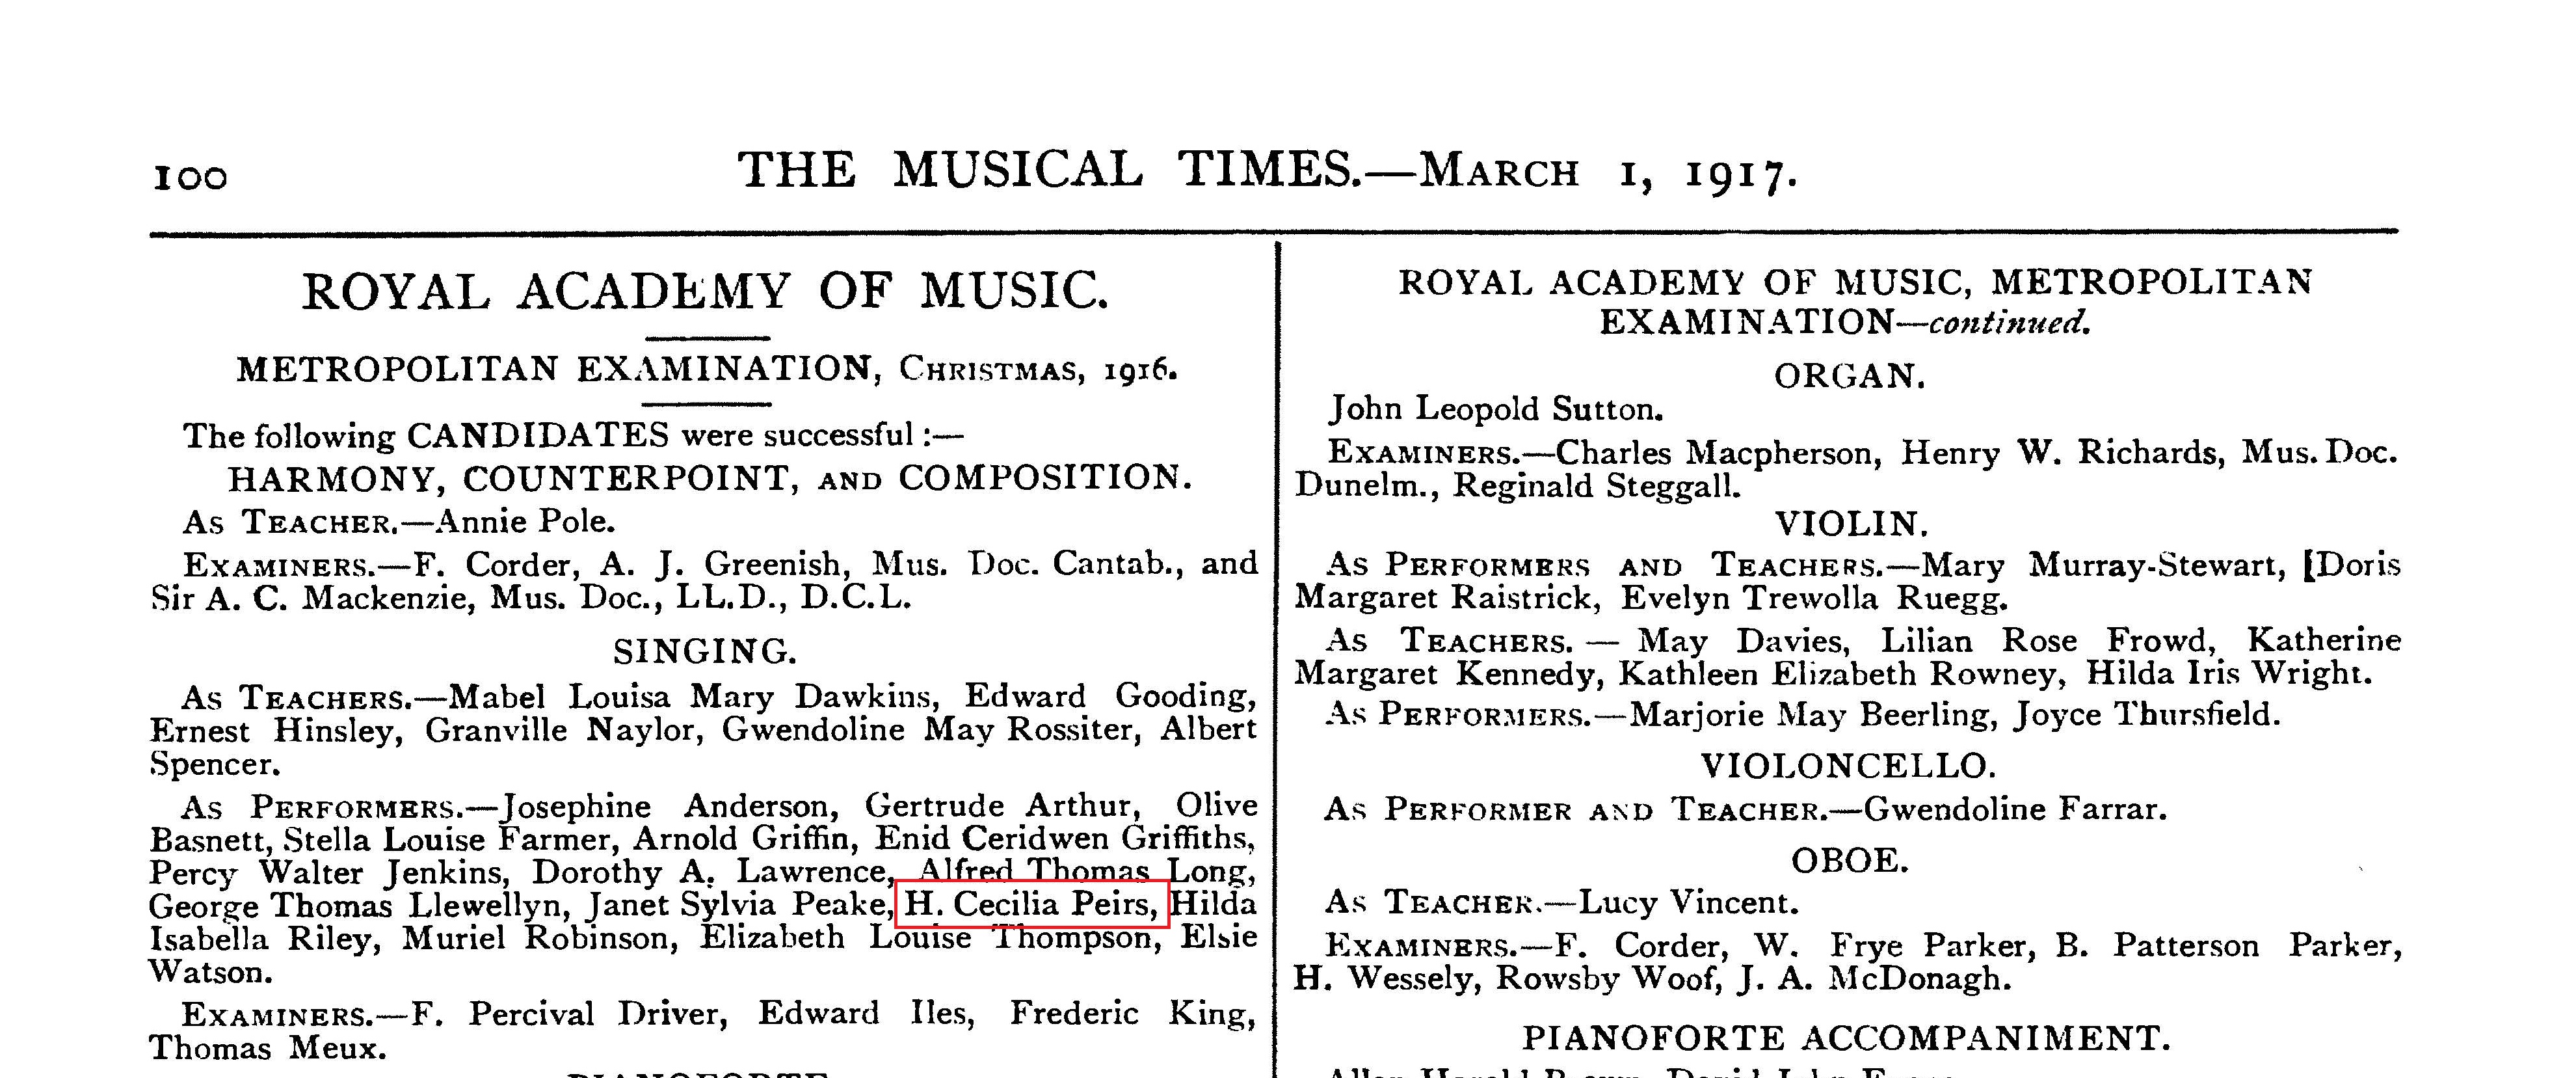 cropped page from The Musical Times, March 1, 1917, featuring the name H. Cecilia Peirs in a list of students who passed the Royal Academy of Music's Metropolitan Examination in Singing performance at Christmas 1916